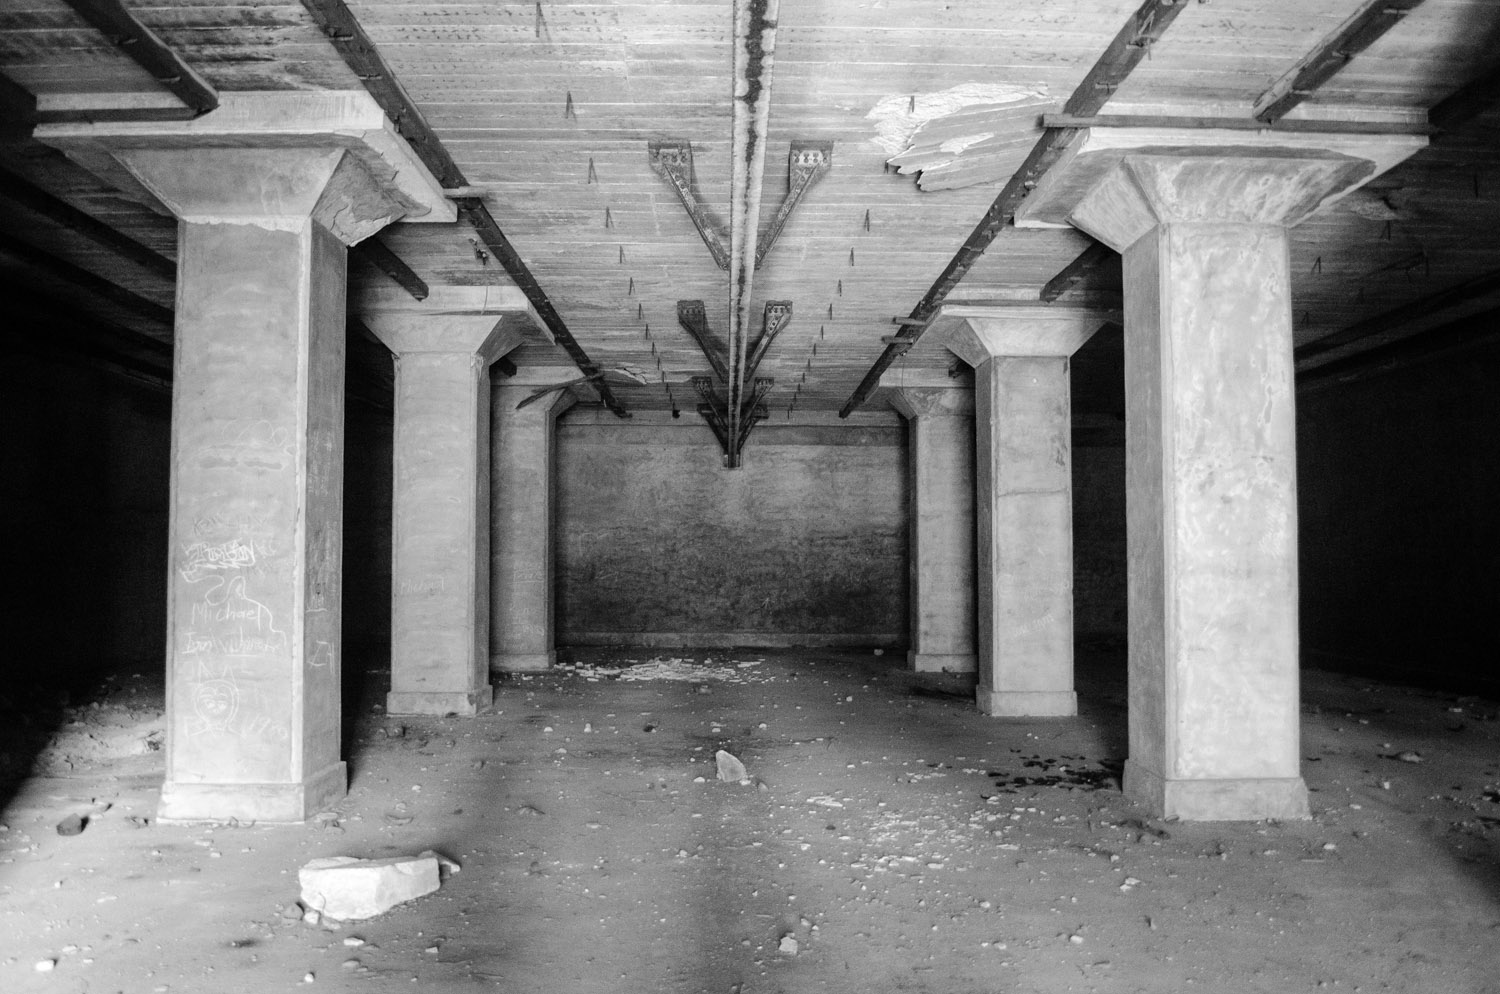 Inside the colossal ammunition depot built to withstand heavy bombing